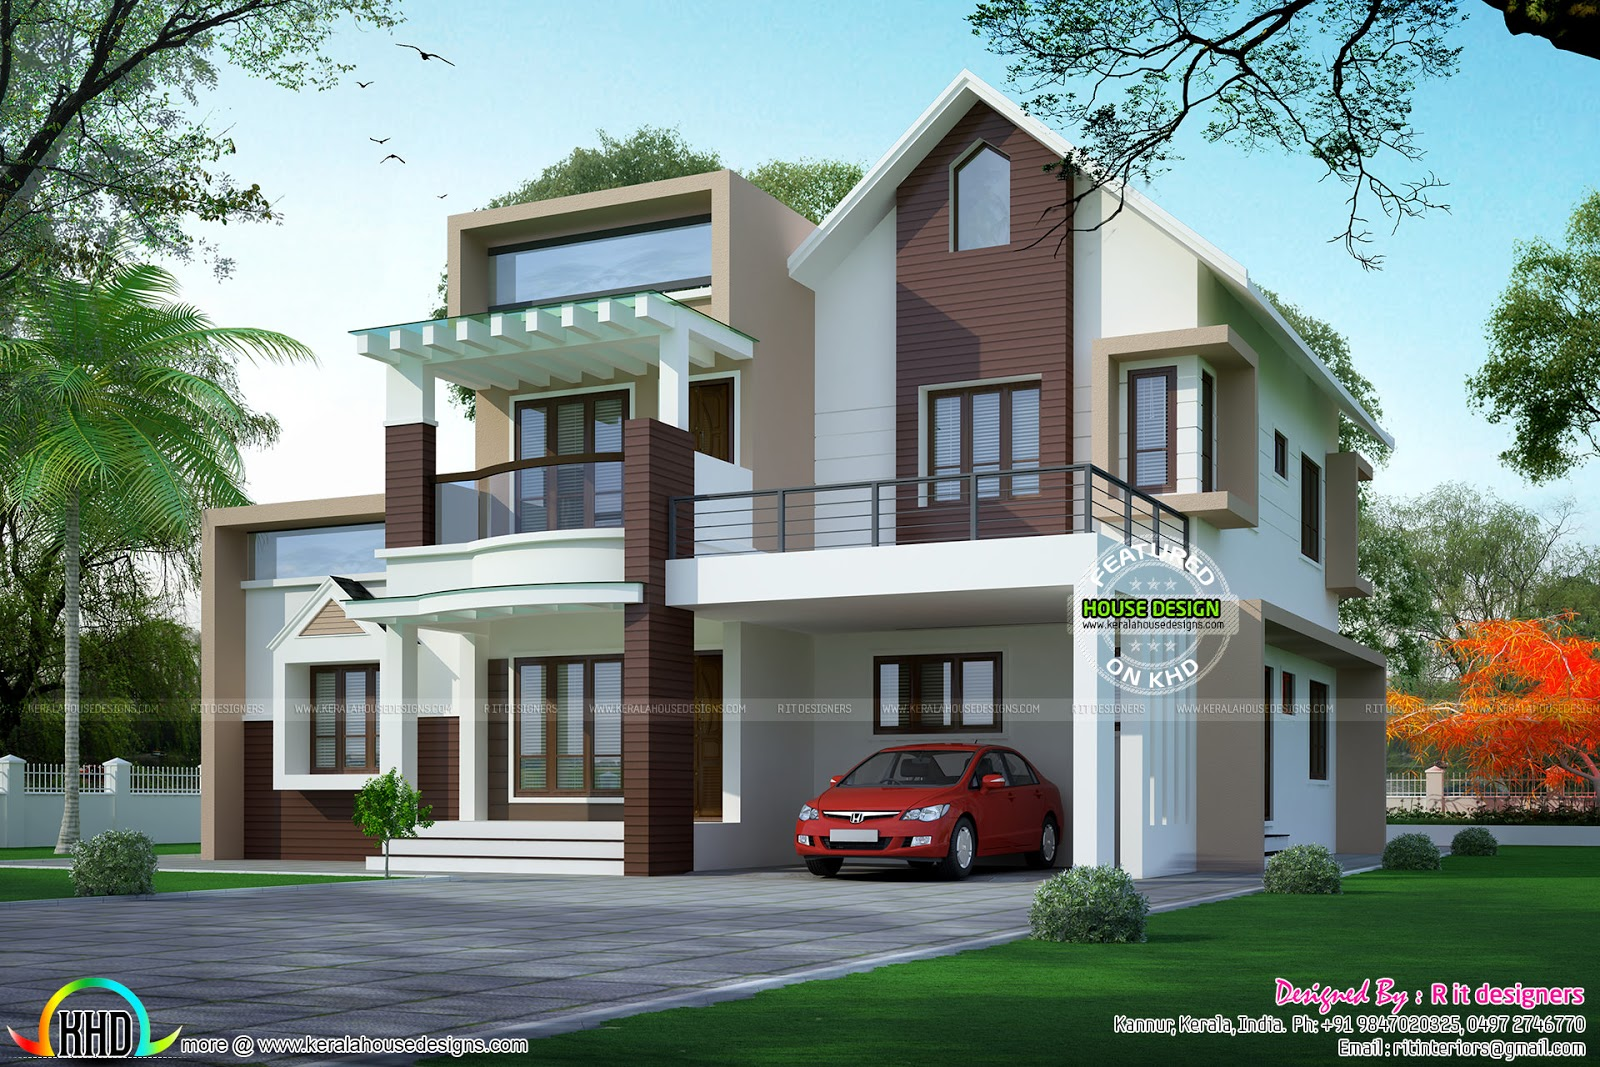 310 Sq Yd Contemporary House Mix Sloping Roof Kerala